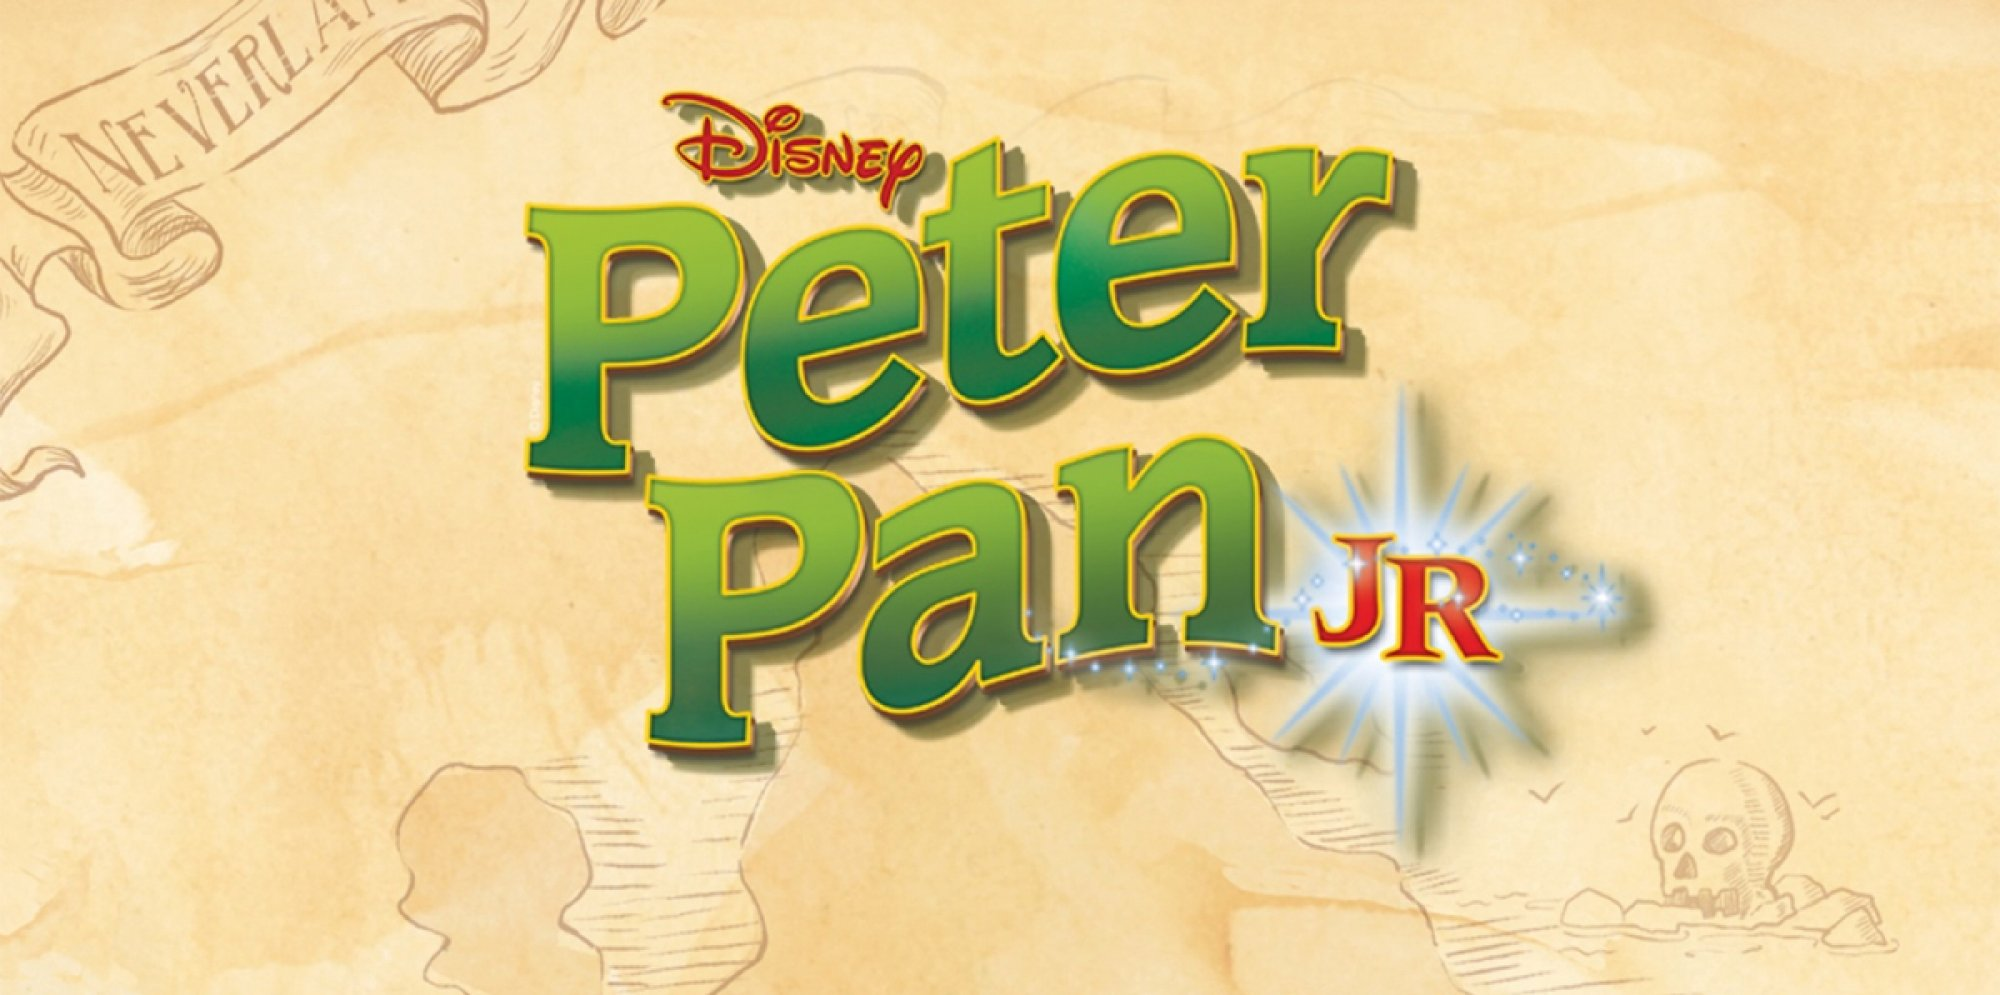 Peter Pan Jr, in green letters on a cartoon rendering of an old treasure map indicating Neverland to the top left and a skeleton on the bottom right